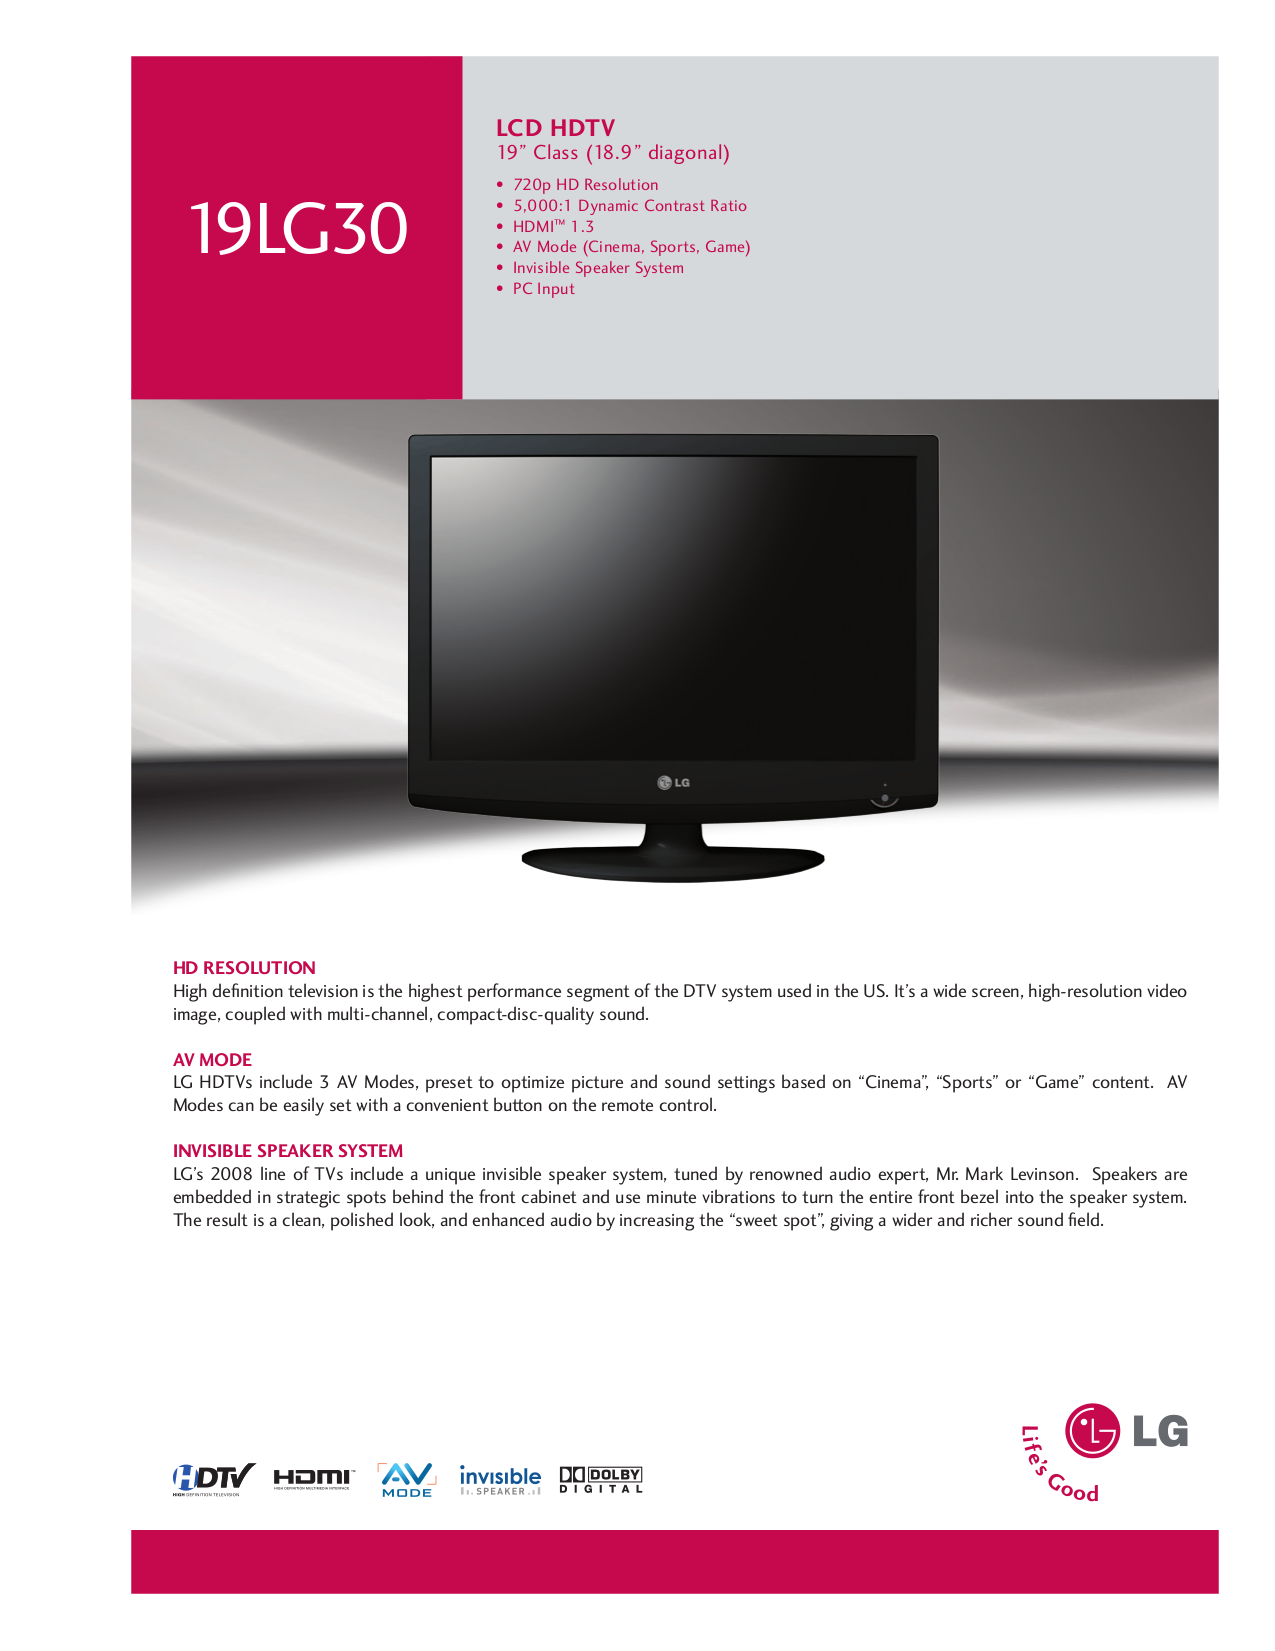 pdf for LG TV 19LG30 manual